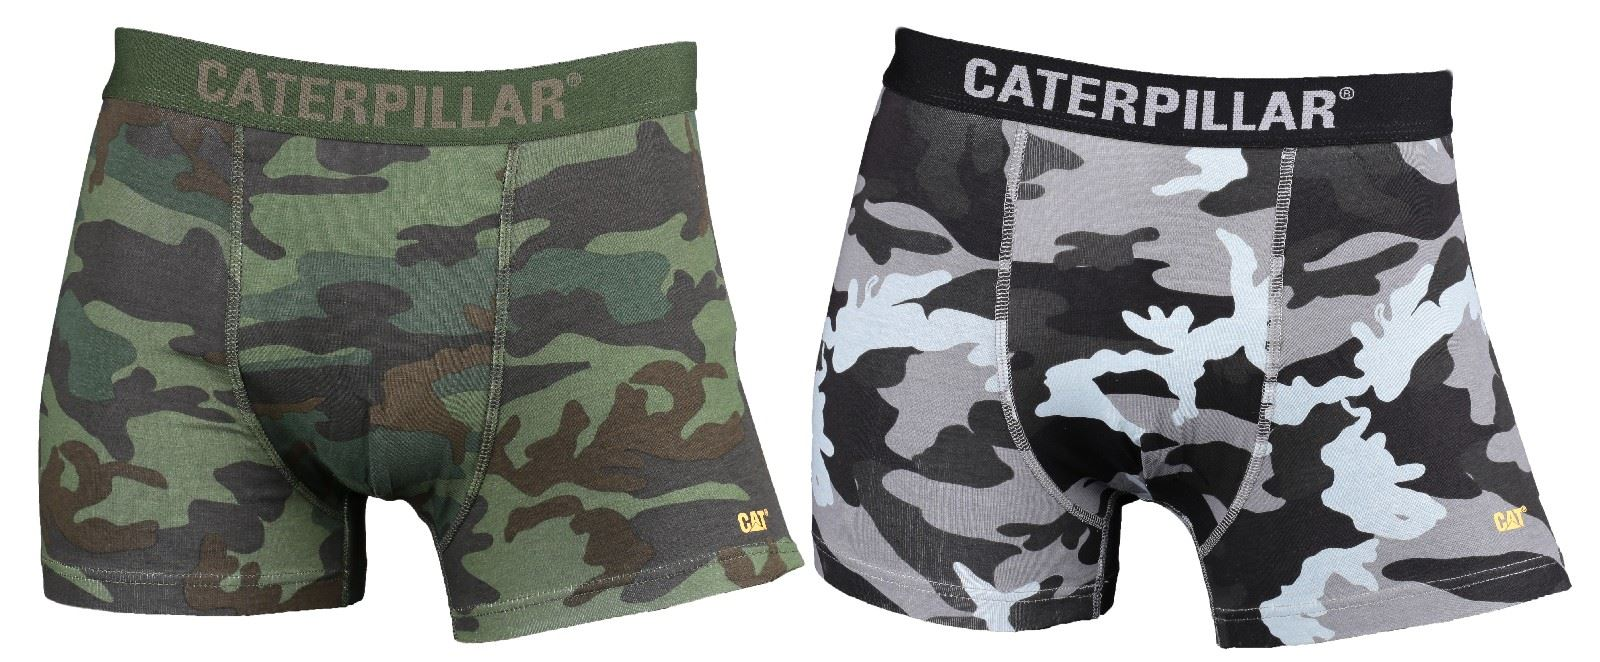 Caterpillar mutande In gatto Camo Pack gatto 2 Di marca Boxer corti